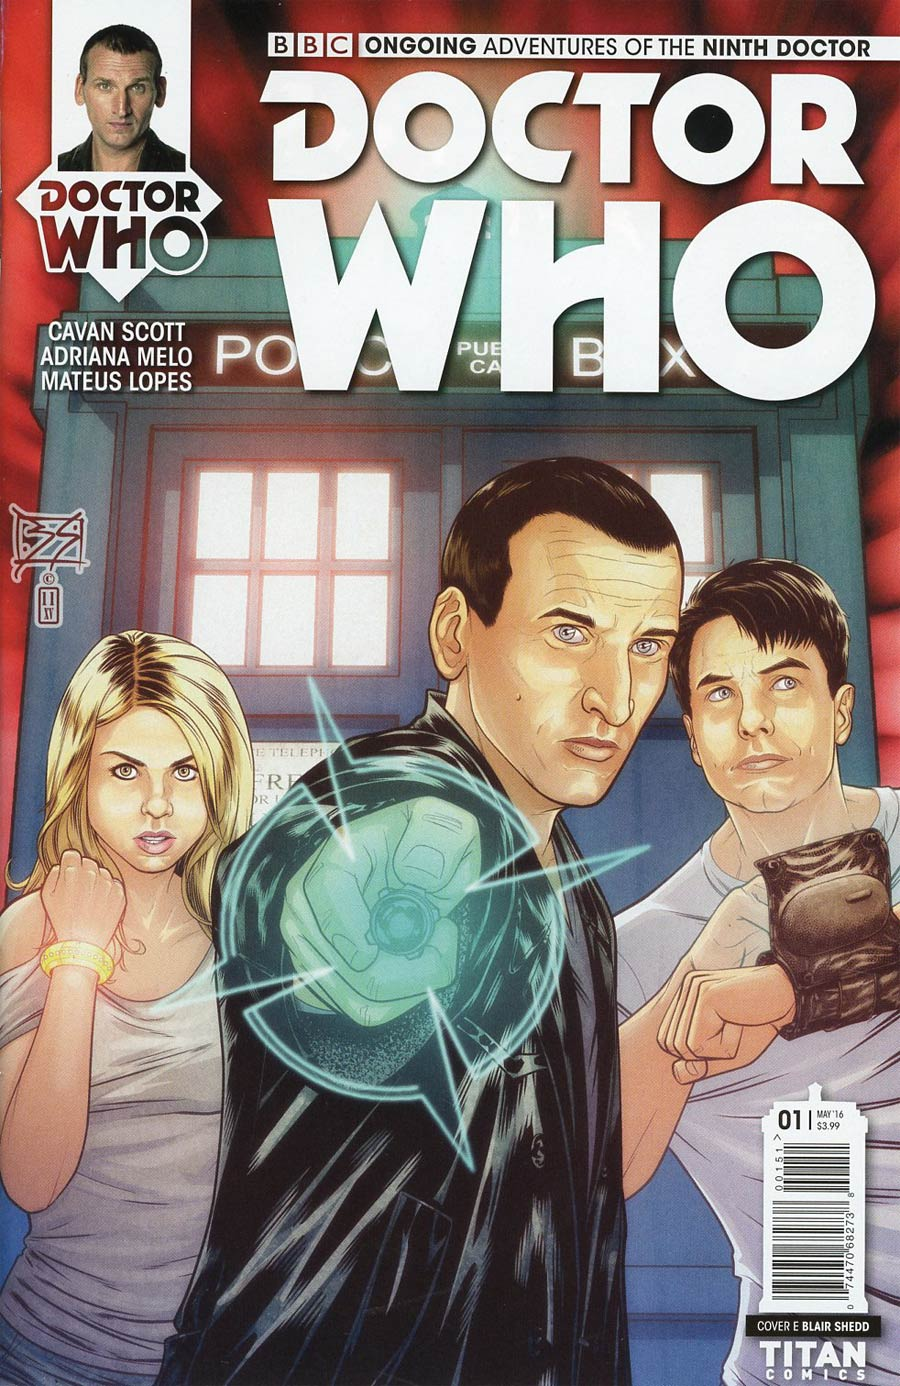 Doctor Who 9th Doctor Vol 2 #1 Cover E Variant Blair Shedd Cover